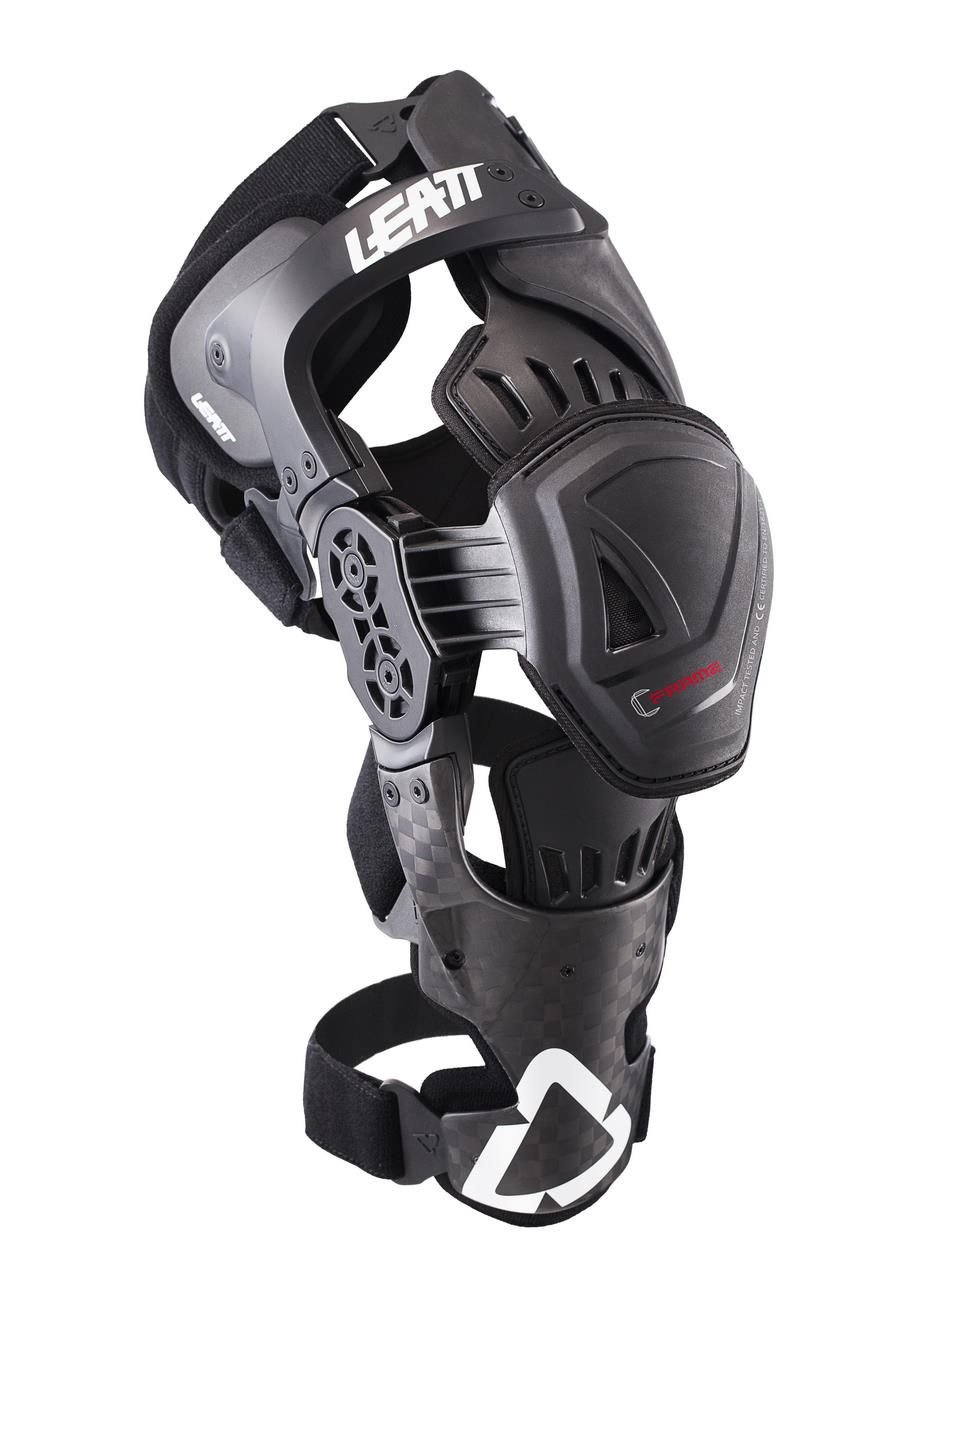 Leatt C-Frame Pro Carbon MX ATV Offroad Knee Braces - Left and Right 2XL 58-64 CM